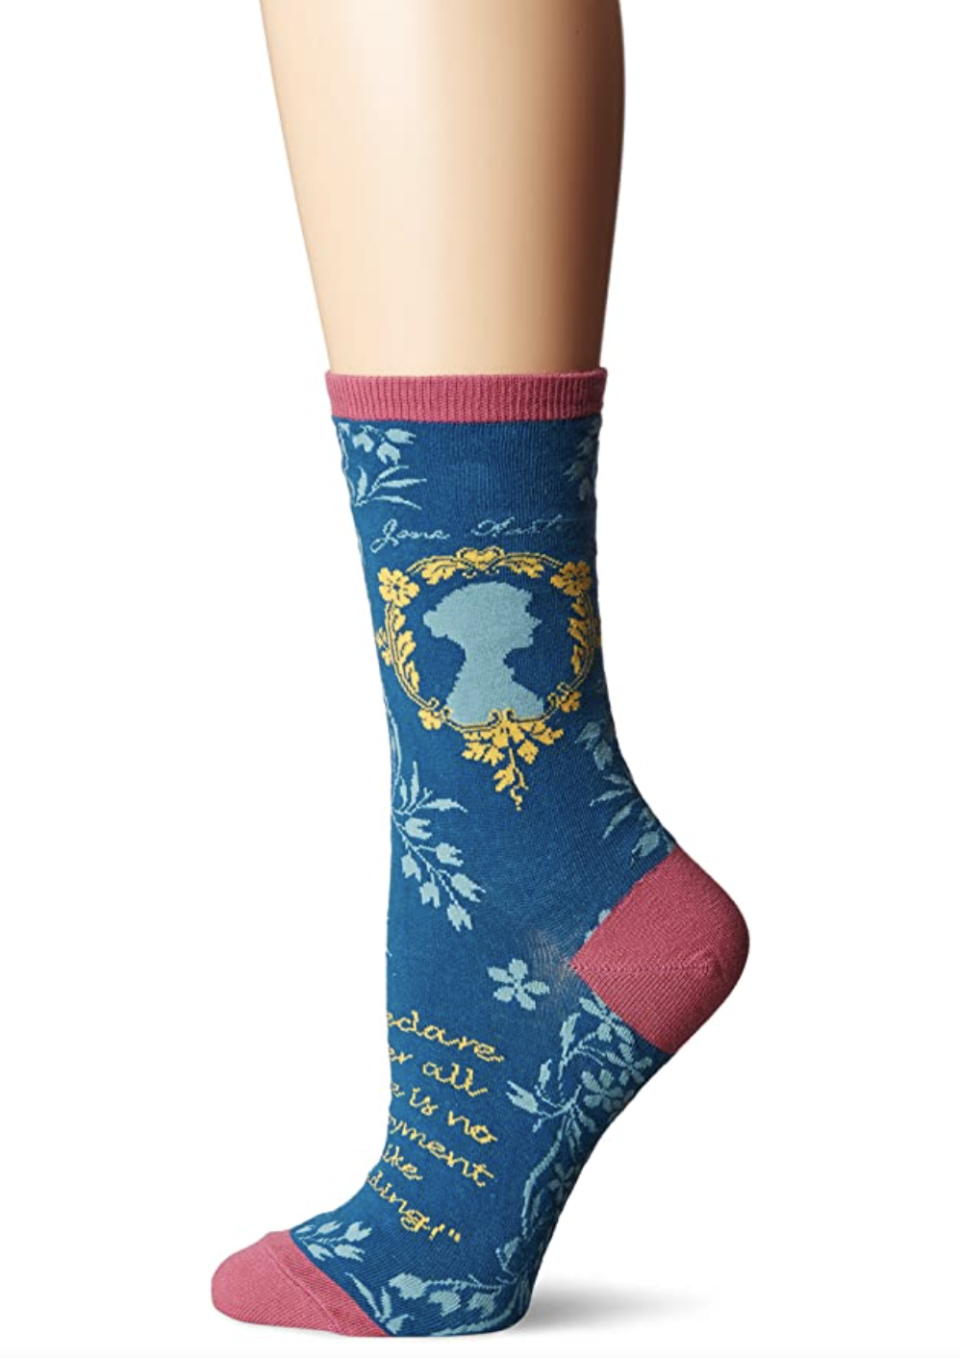 """<p><strong>Socksmith</strong></p><p>amazon.com</p><p><strong>$8.00</strong></p><p><a href=""""https://www.amazon.com/dp/B01HWVLE0O?tag=syn-yahoo-20&ascsubtag=%5Bartid%7C10072.g.34373773%5Bsrc%7Cyahoo-us"""" rel=""""nofollow noopener"""" target=""""_blank"""" data-ylk=""""slk:SHOP NOW"""" class=""""link rapid-noclick-resp"""">SHOP NOW</a></p><p>For the college student majoring in English Lit, a cozy pair of socks to see her through all those classic novels. </p>"""